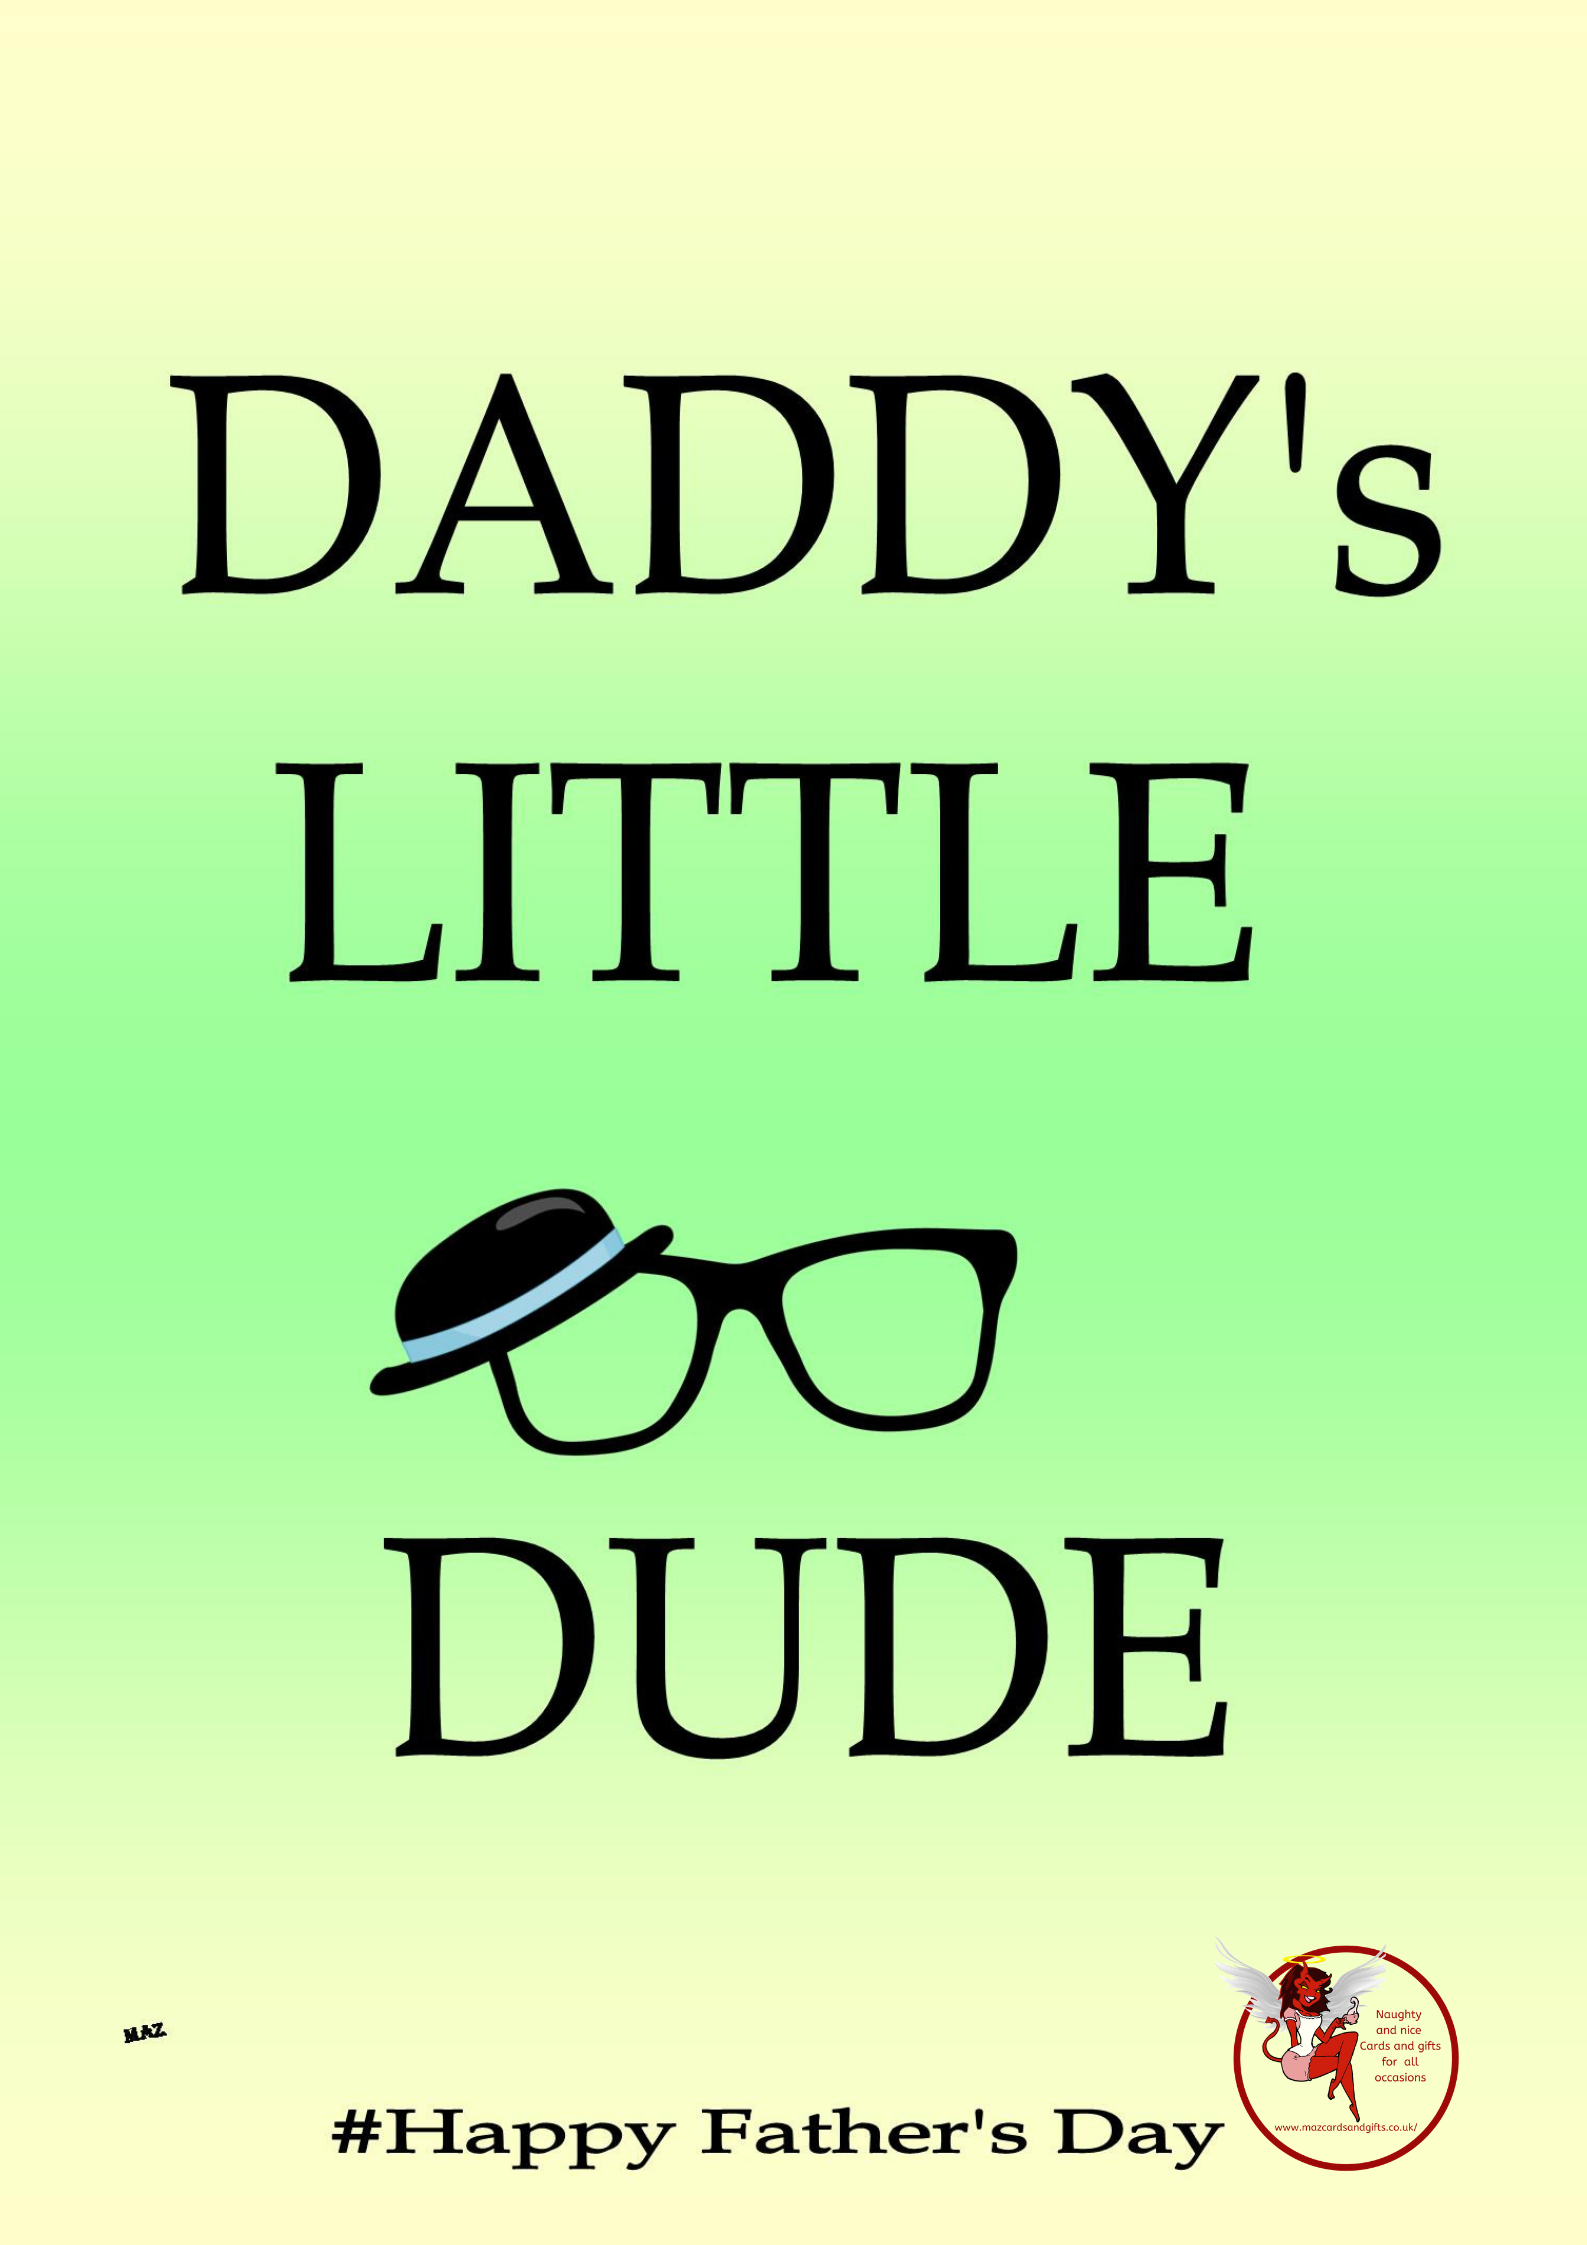 Father's Day - Daddy's little dude - Order No 064